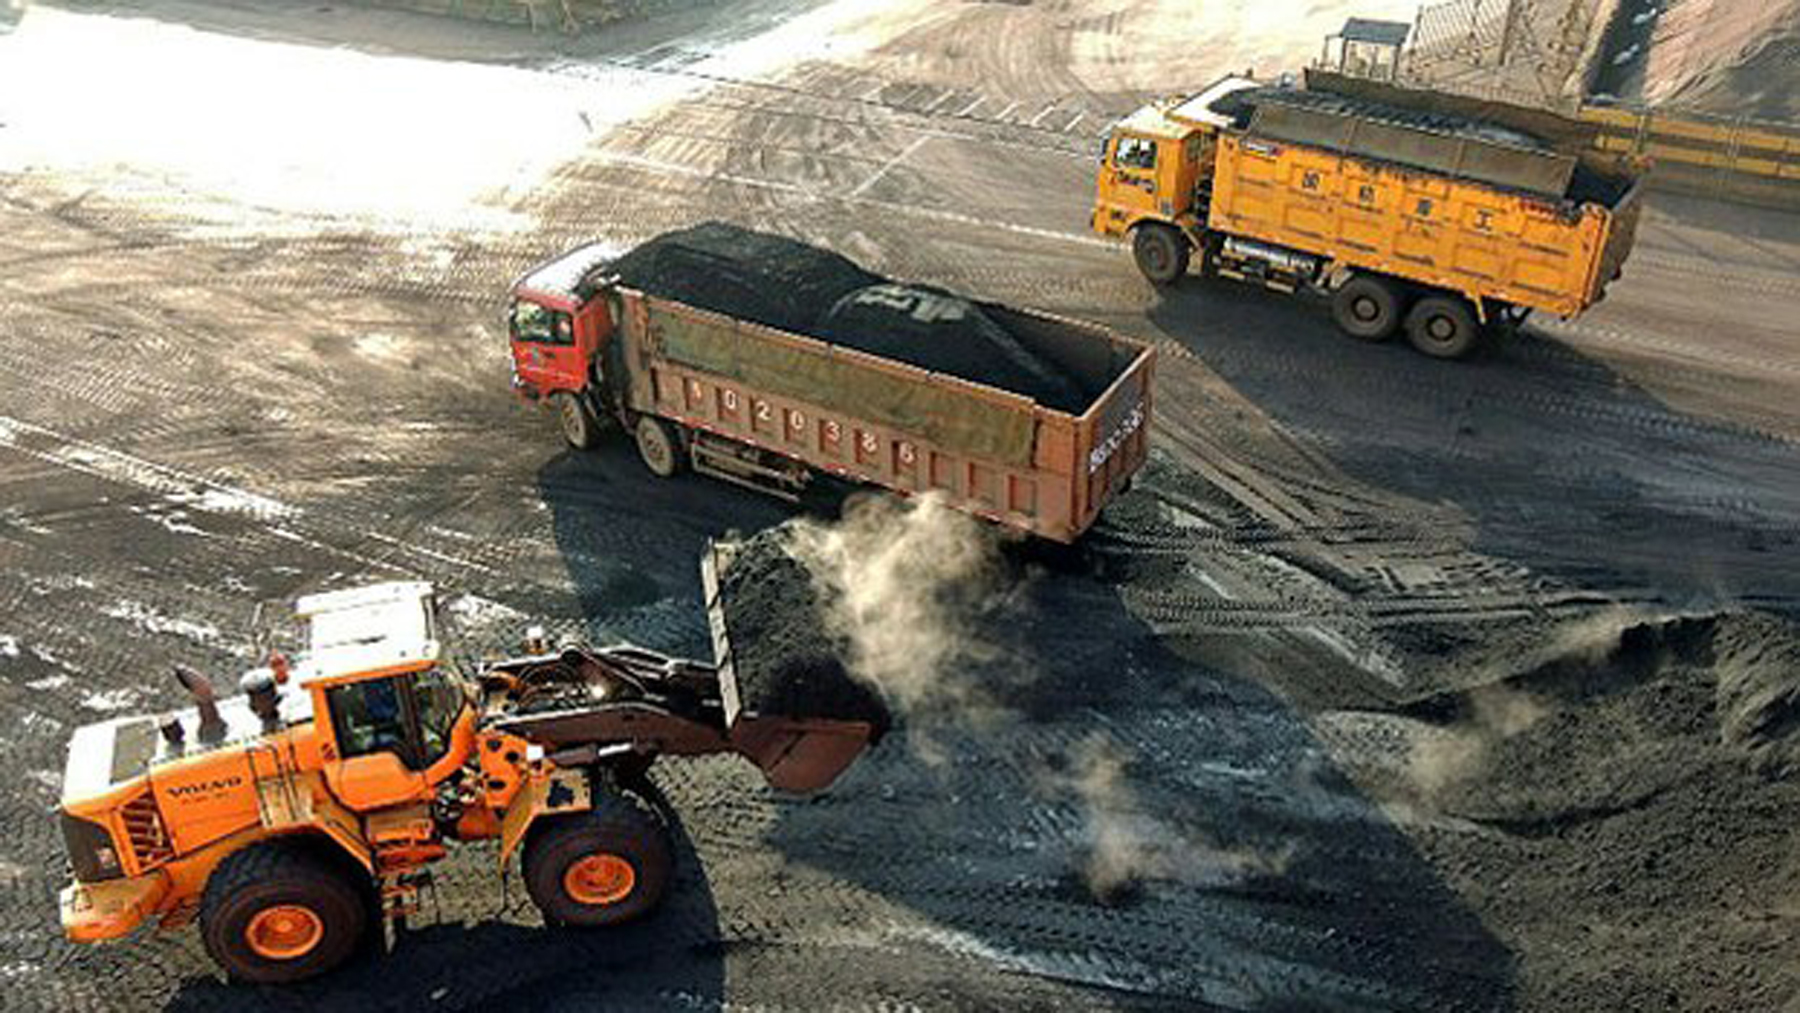 South Africa's Leading Coal Distribution Company